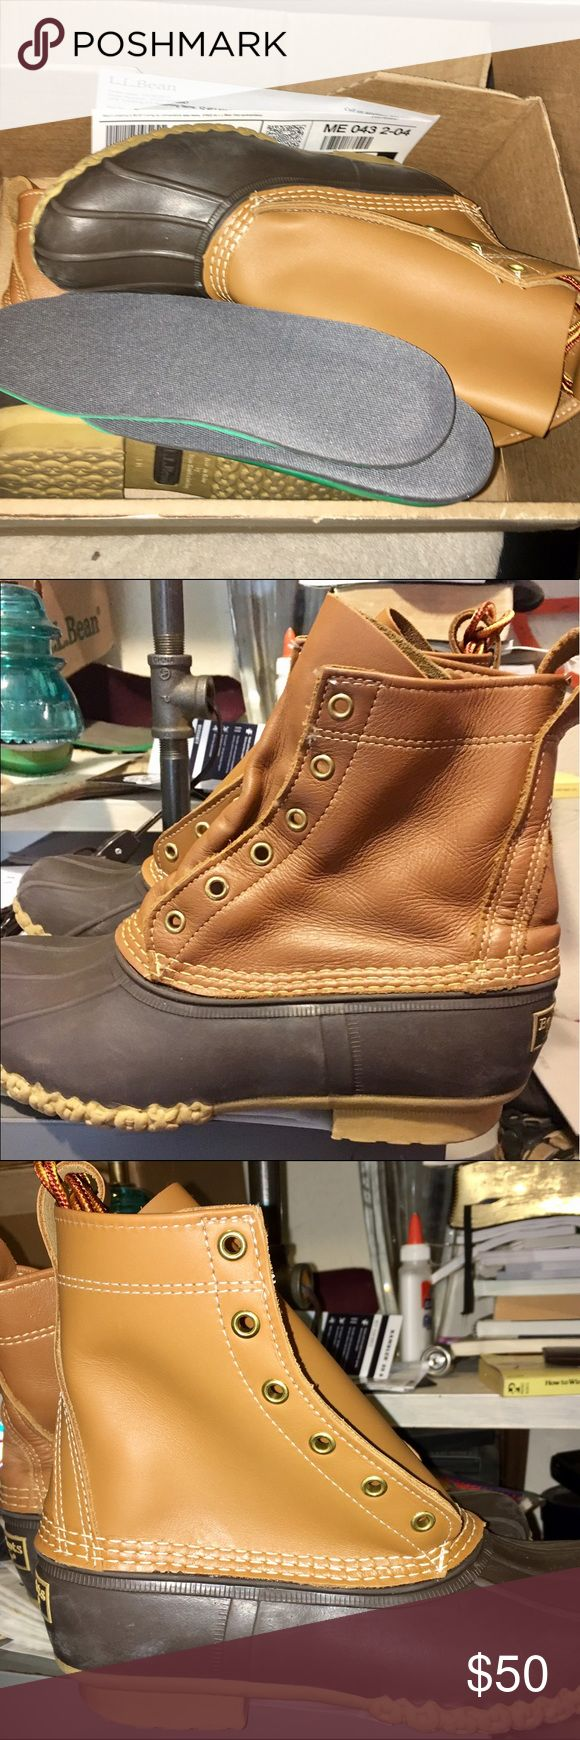 """Women's LL Bean duck boots 8"""" tall Women's LL Bean Duck Boots size 9 medium. 8 inches tall. Tan Leather with Brown Rubber. Also fit man's size 7. They are unisex boots.  Just returned by LL Bean. Bean replaced one of the leather uppers. Soles are not new but little wear on them. Brand new laces and inserts. This is a bargain for someone!  Ships in LL Bean box. Retail on boots from LL Bean website is $119.00. I ship within 1 business day of cleared payment. These run Large so please be…"""